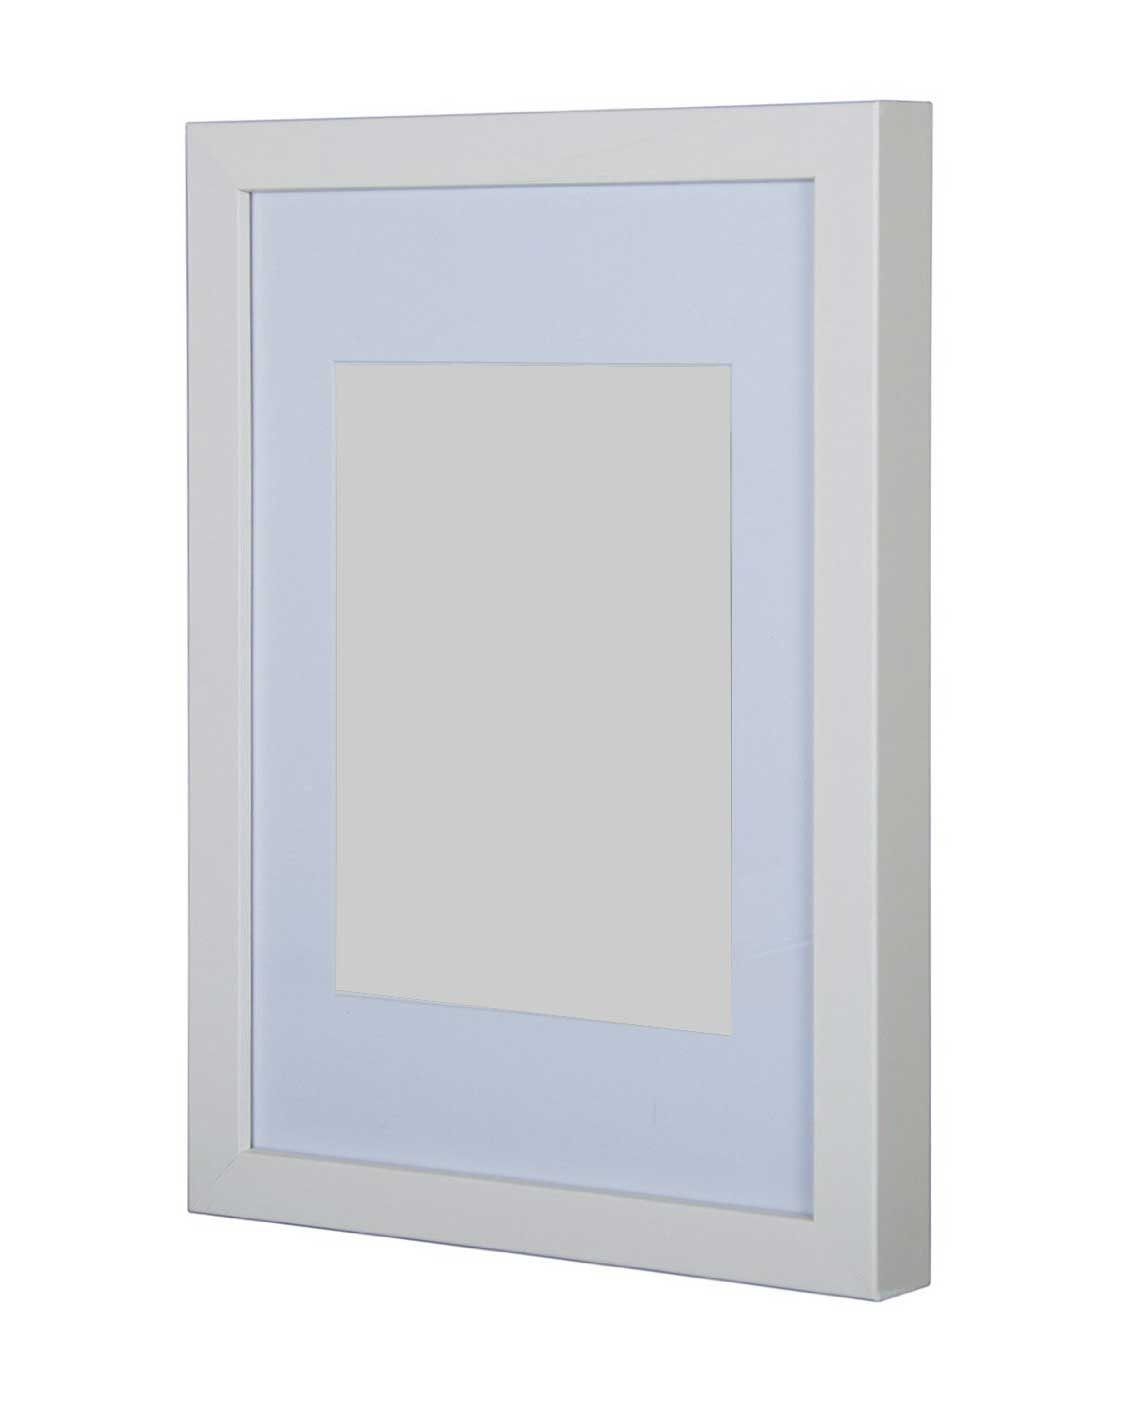 A2 White Frame Gallery Wooden Picture Frame White A1 With A2 Mount